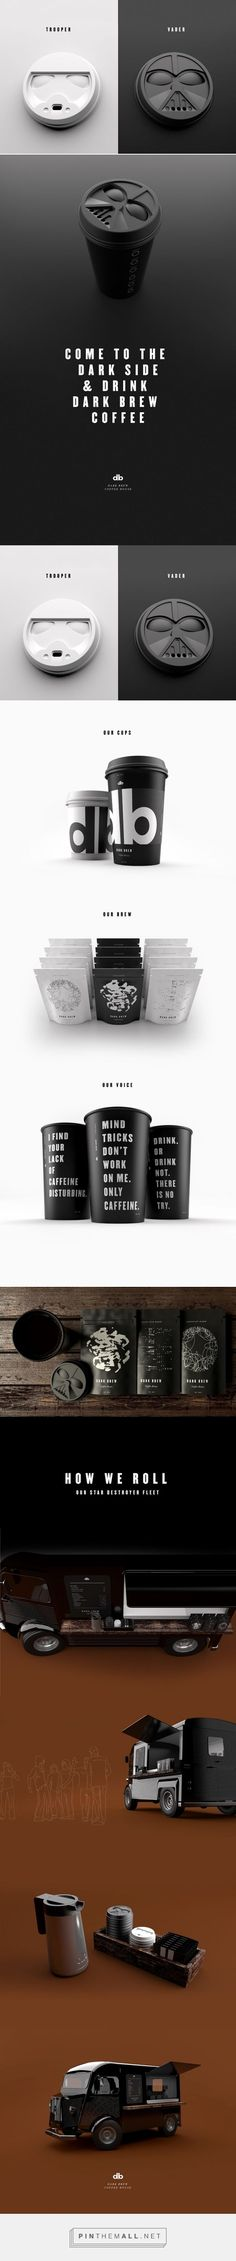 cool Dark Brew Coffee House - star wars trooper vader concept by Spencer Davis & Scott Schenone - http://www.packagingoftheworld.com/2015/12/dark-brew-coff... - a grouped images picture